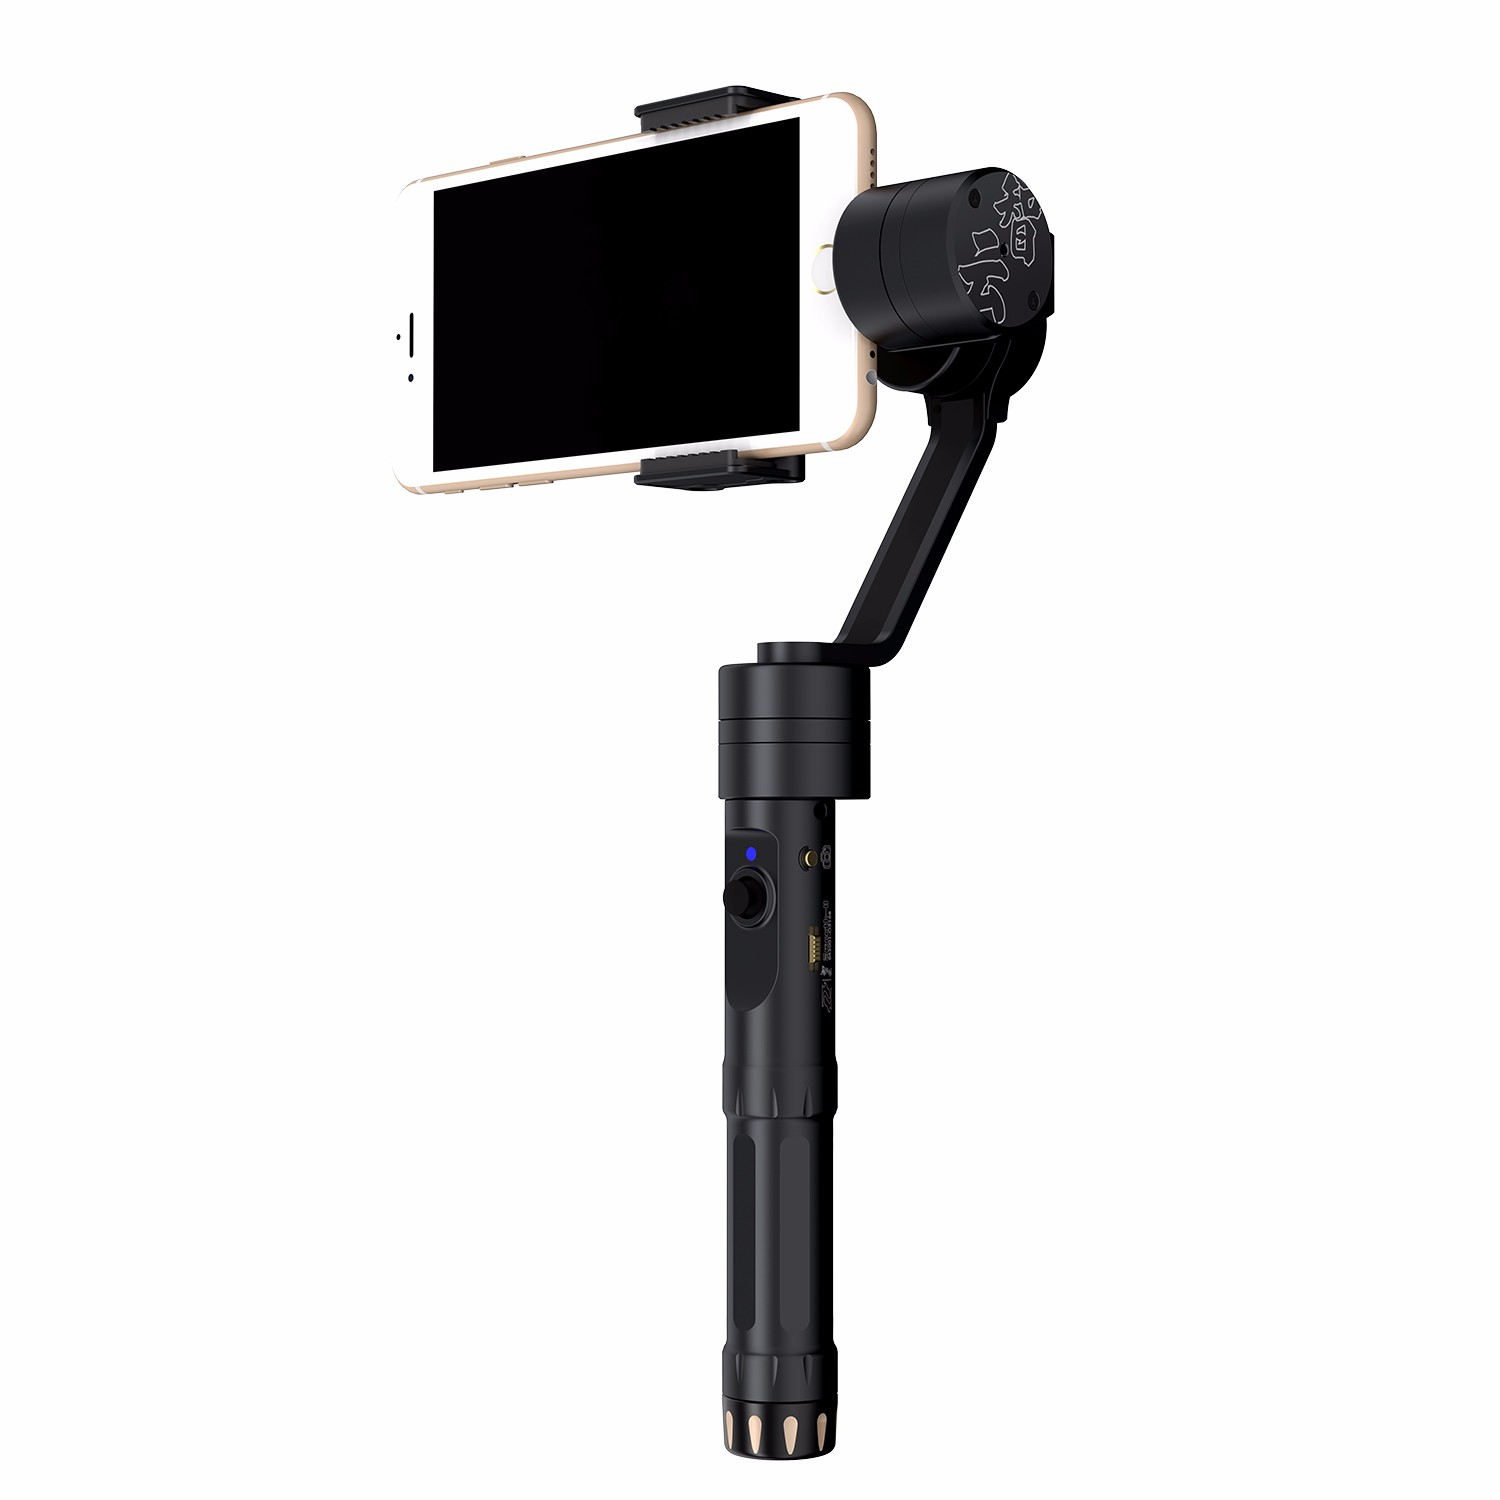 Zhiyun Z1 Smooth II 2 Multi-function 3-Axis Handheld Steady Gimbal Supports Phone Camera Wireless Controller for iPhone 7 plus стоимость